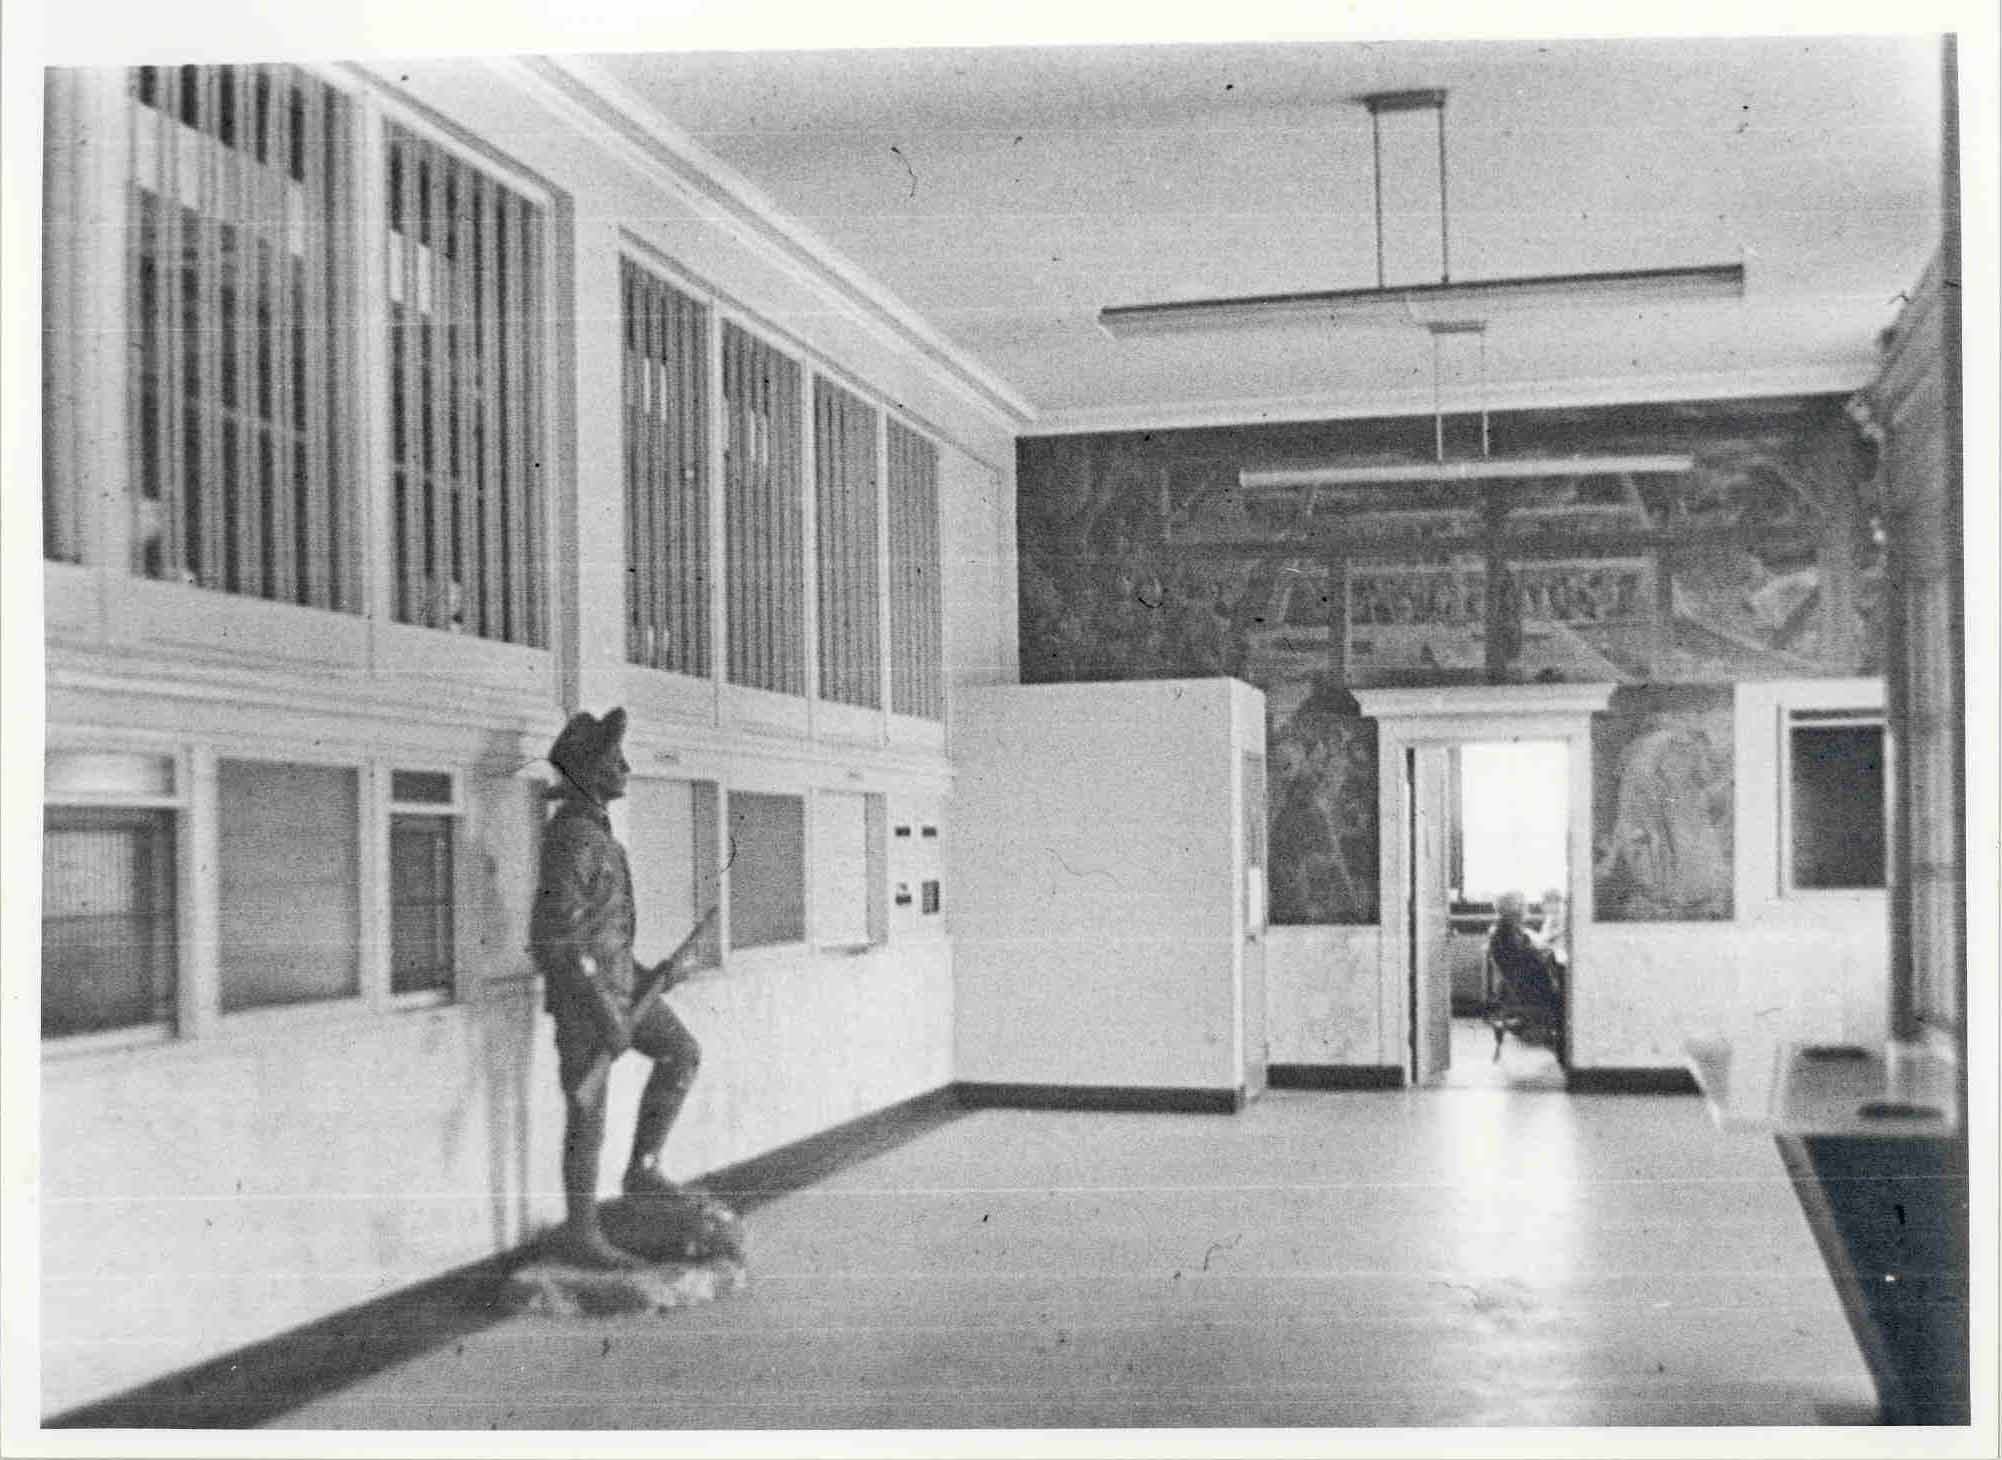 This is a photo, courtesy of Rome Historical Society, of the mural in its City Hall surroundings circa the mid-1900s.  The environs have changed over the years.